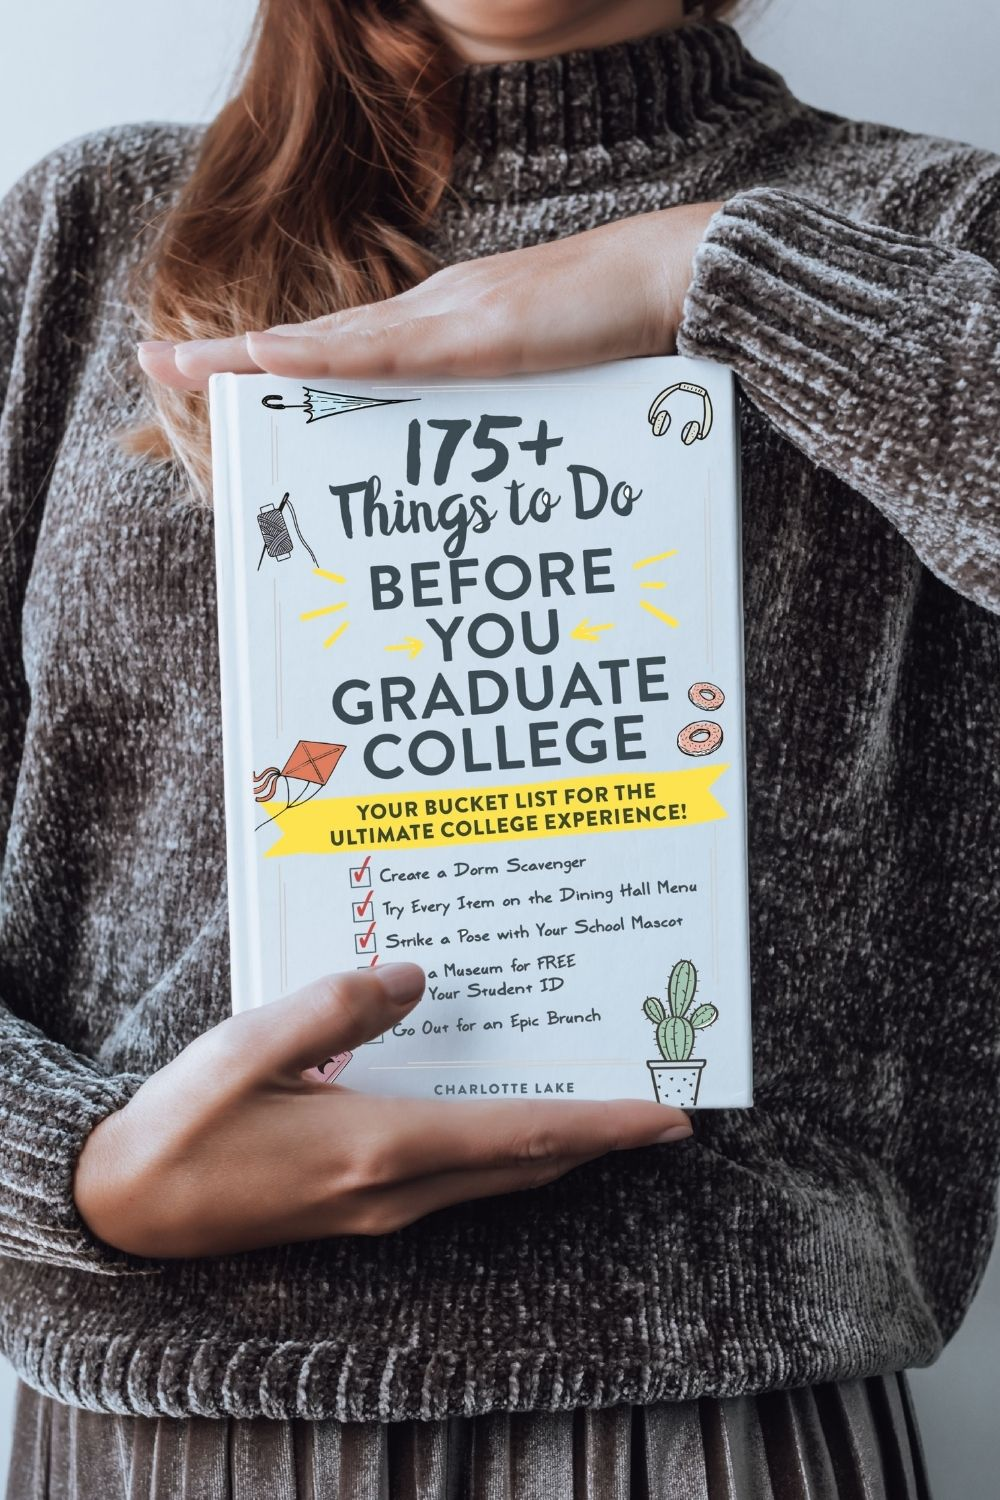 woman in grey clothing with red hair holding book of things to do before you graduate college